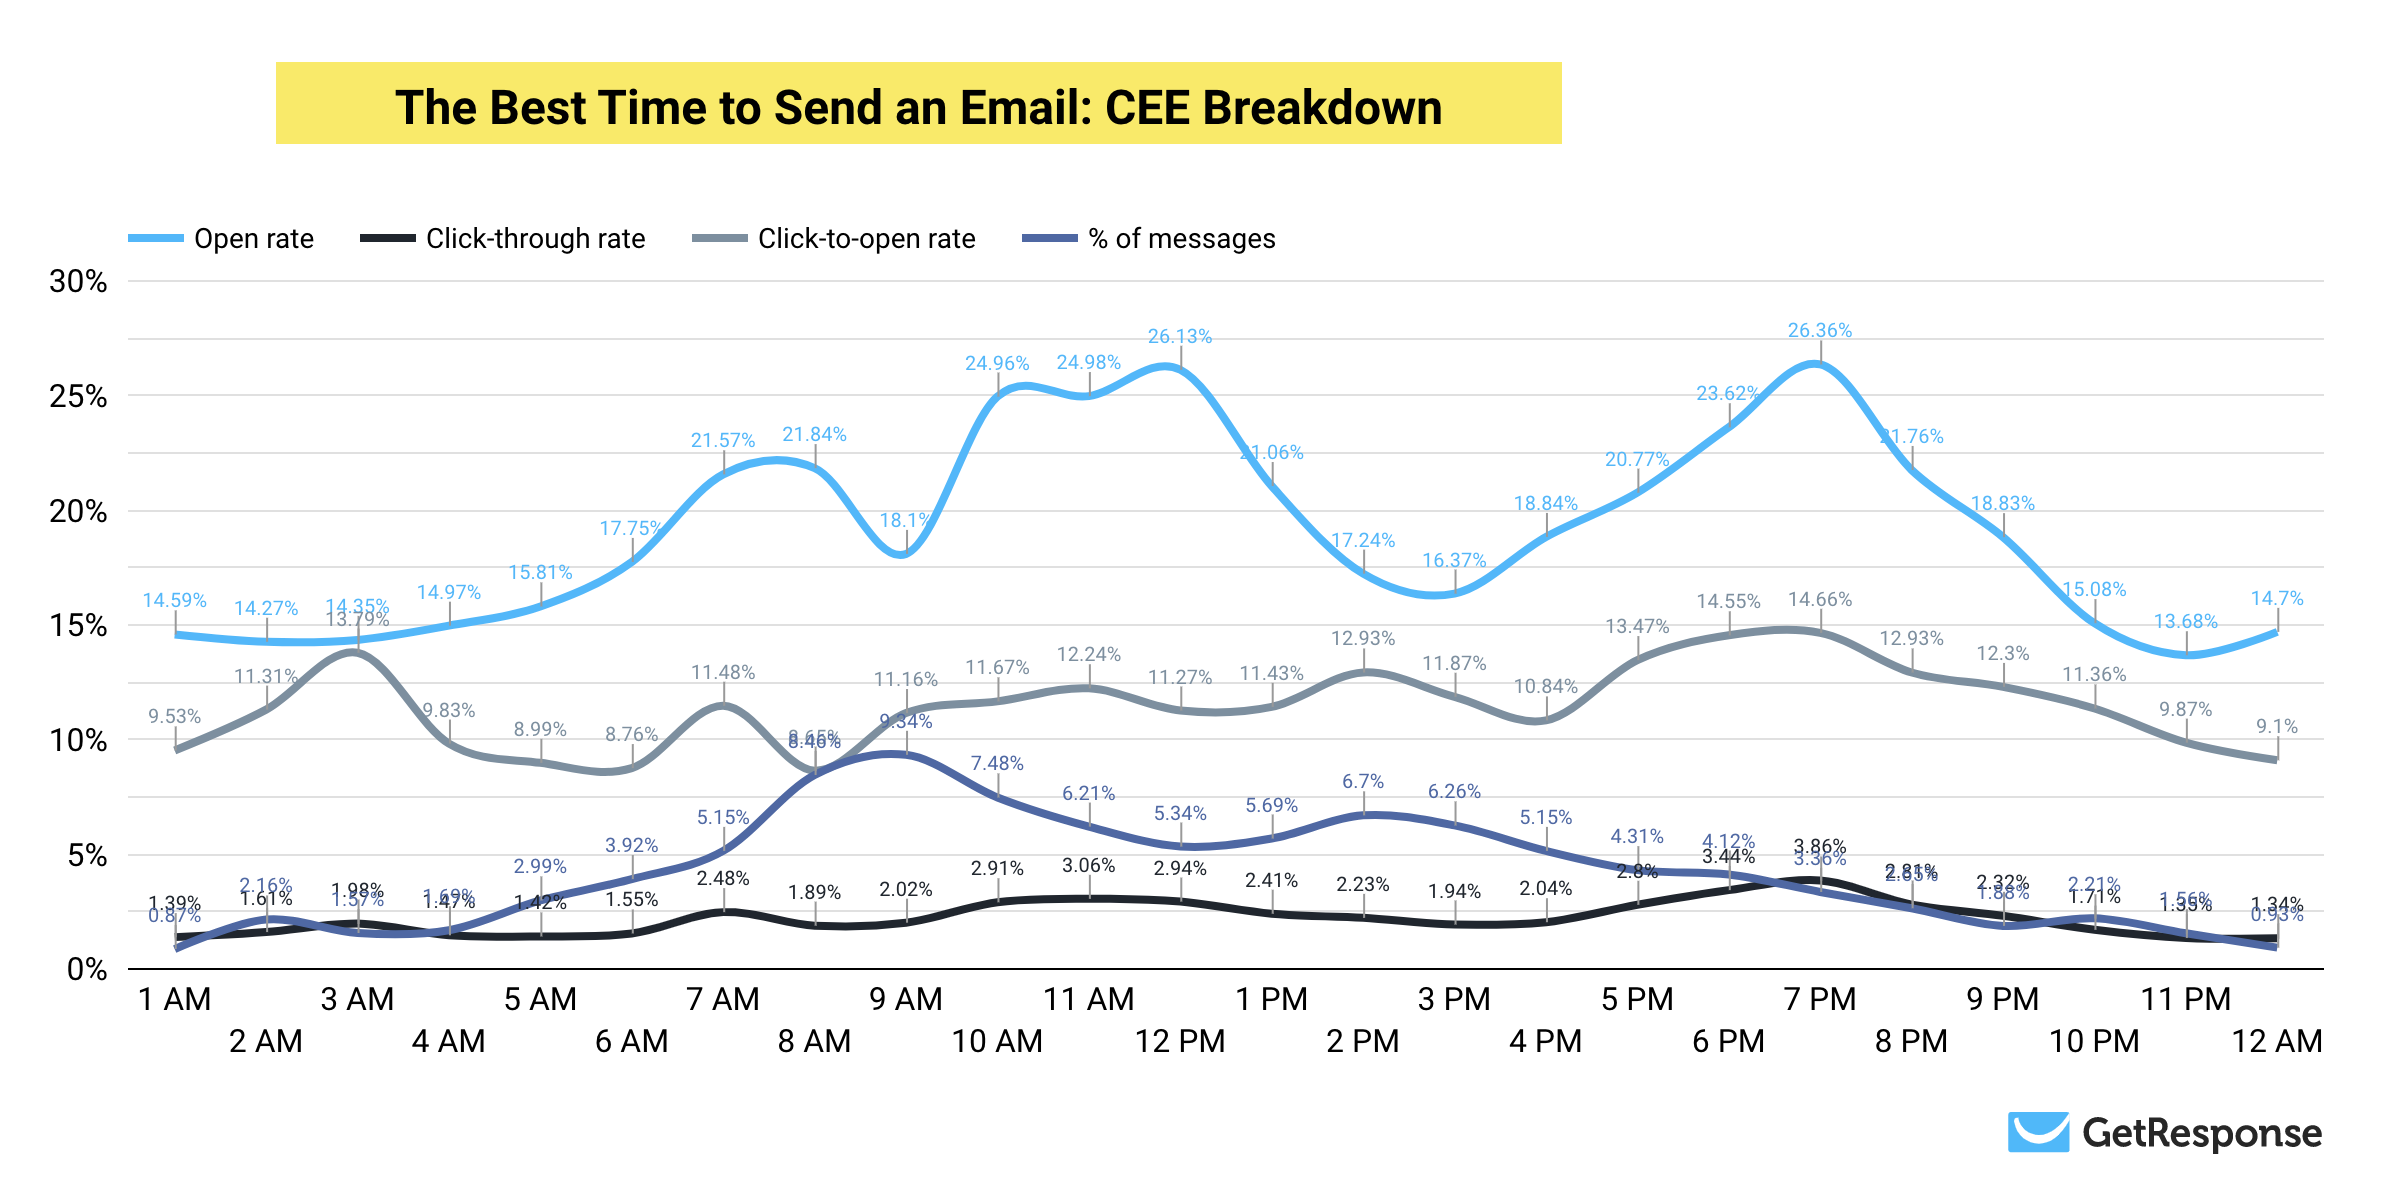 Chart showing the full results of the best time to send email study for Central and Eastern Europe CEE region.